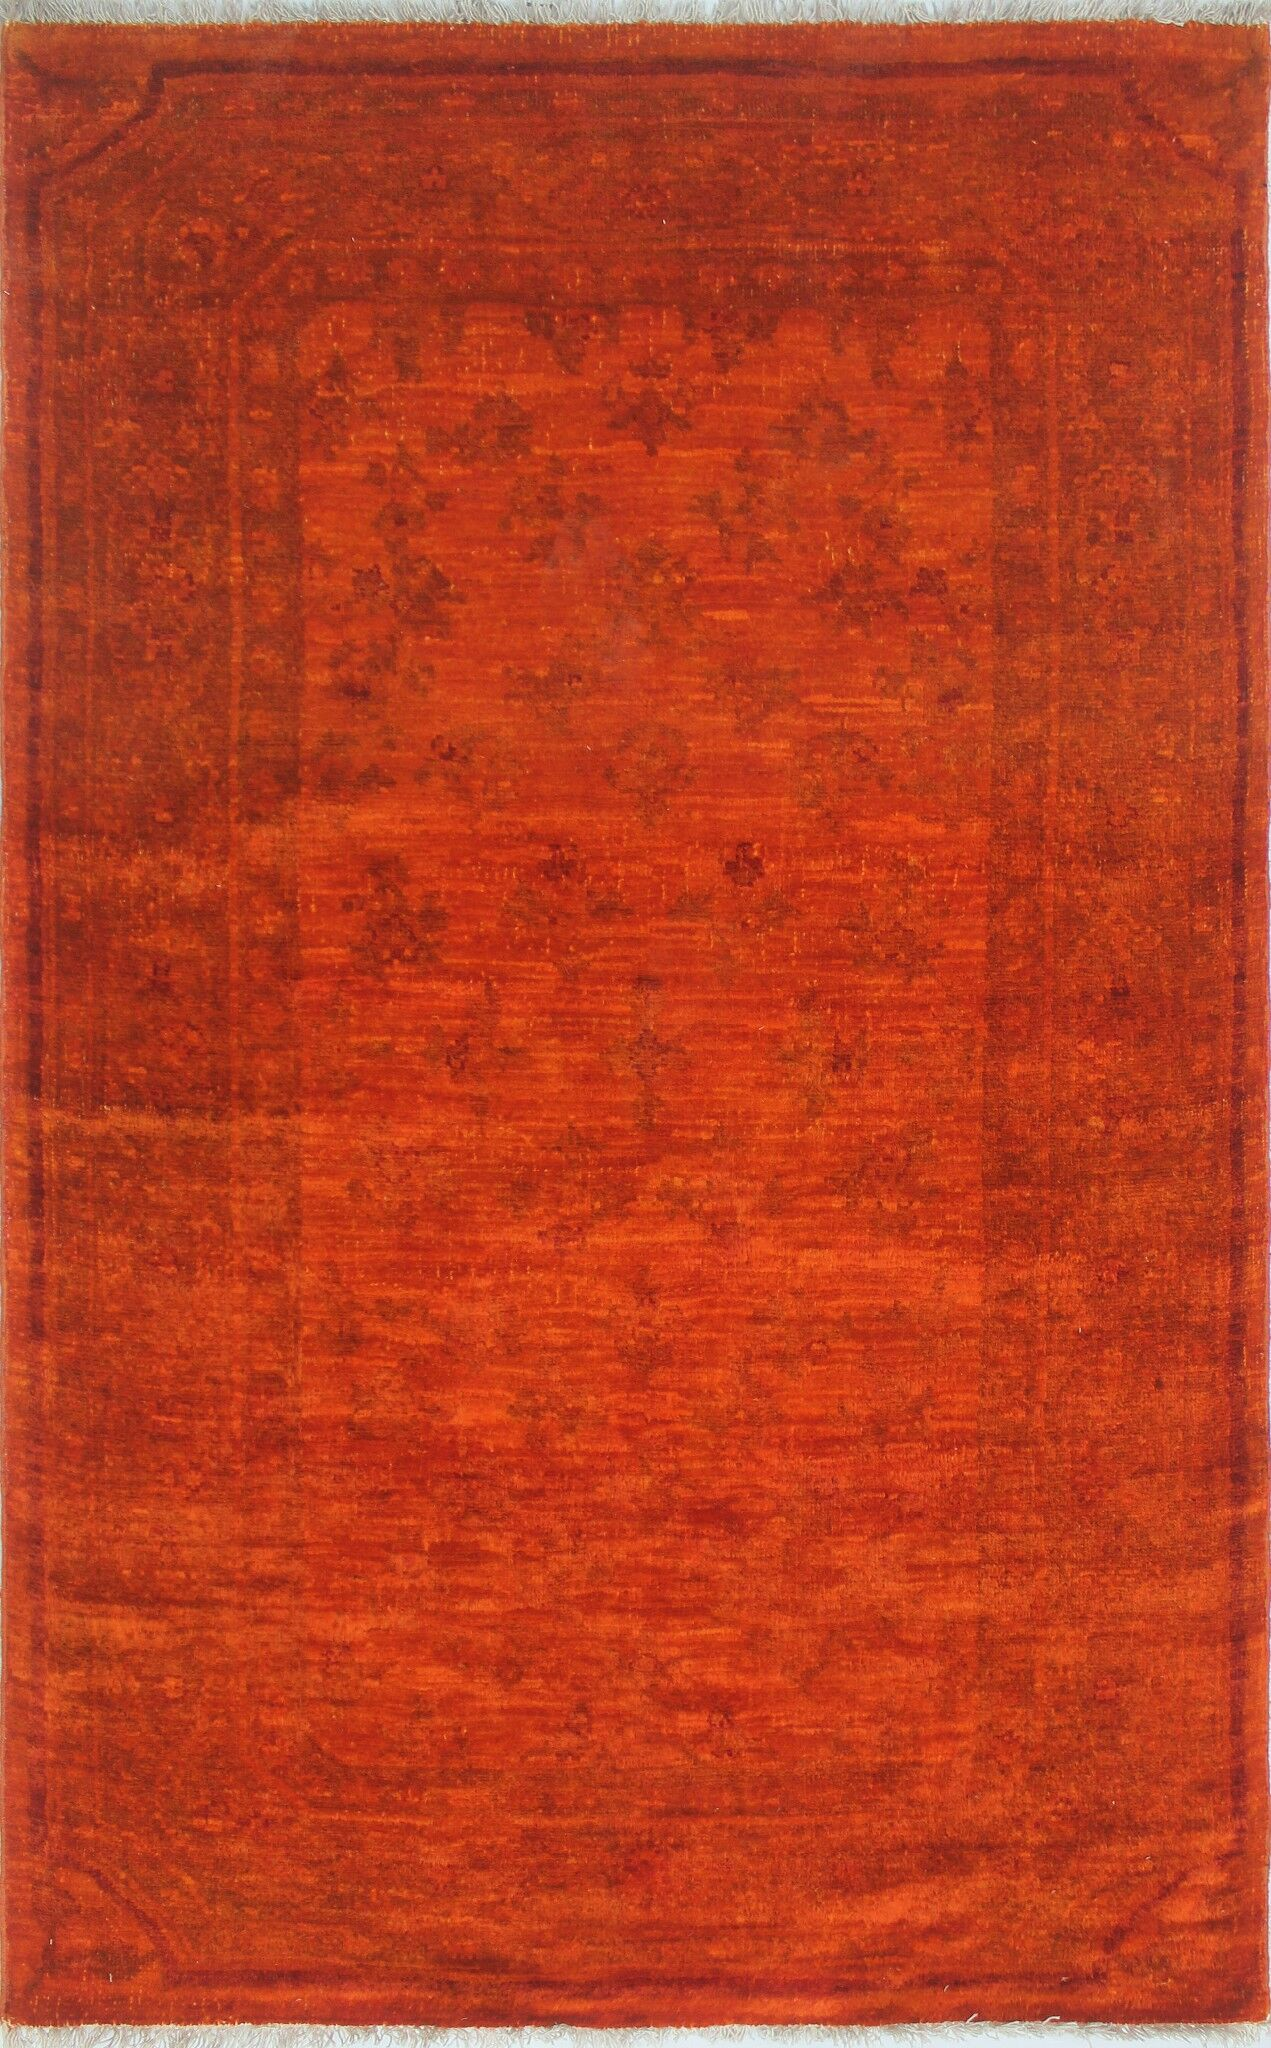 One-of-a-Kind Collette Hand-Knotted Wool Orange Area Rug